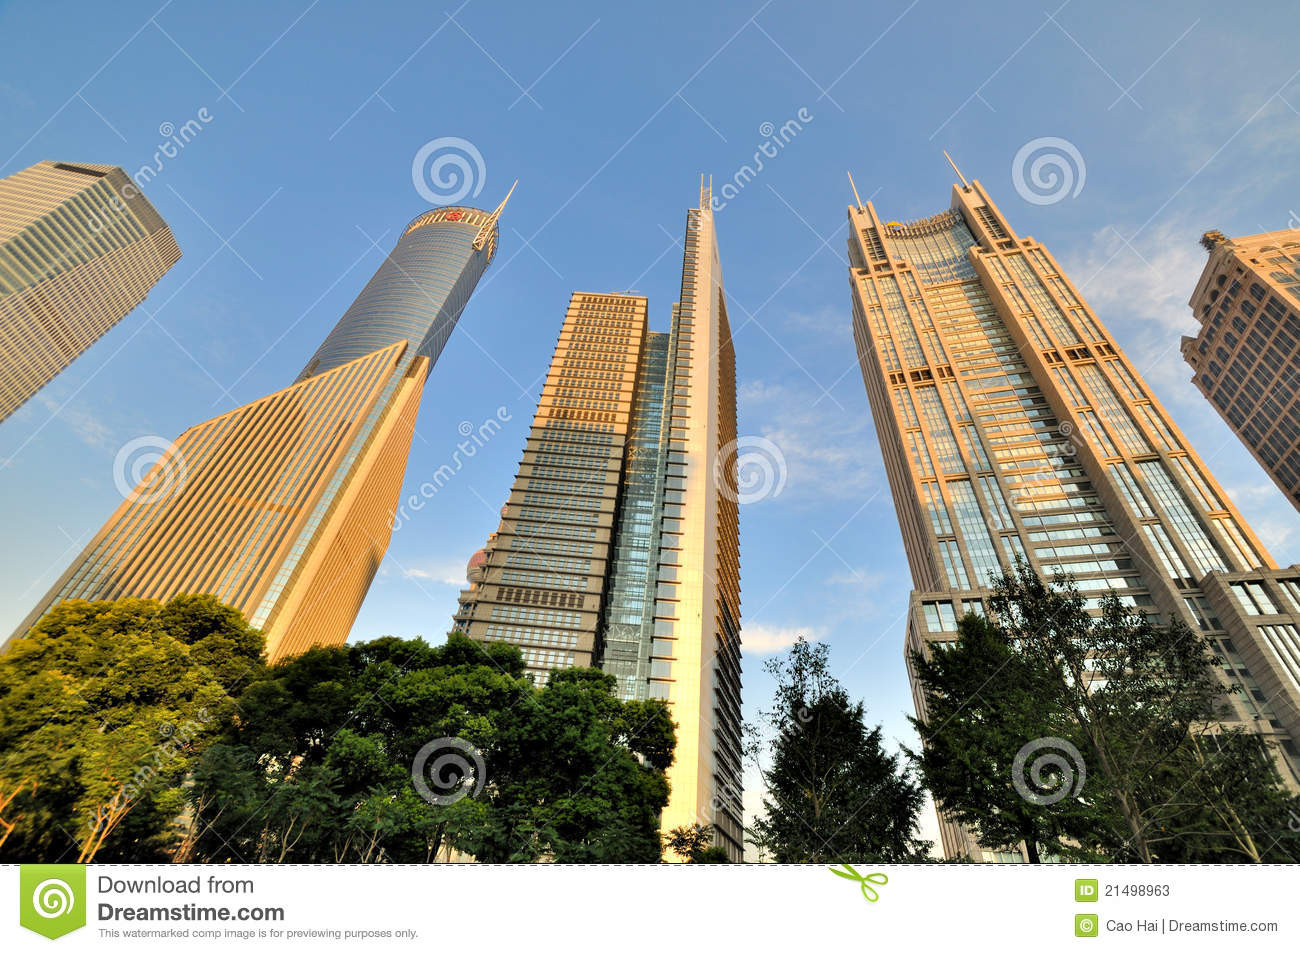 business environment in shanghai Elevation extremes: the average elevation is about four meters above sea level except for a few hills lying in the southwest corner, most parts of shanghai are flat and belong to the alluvial plain of the yangtze river delta.